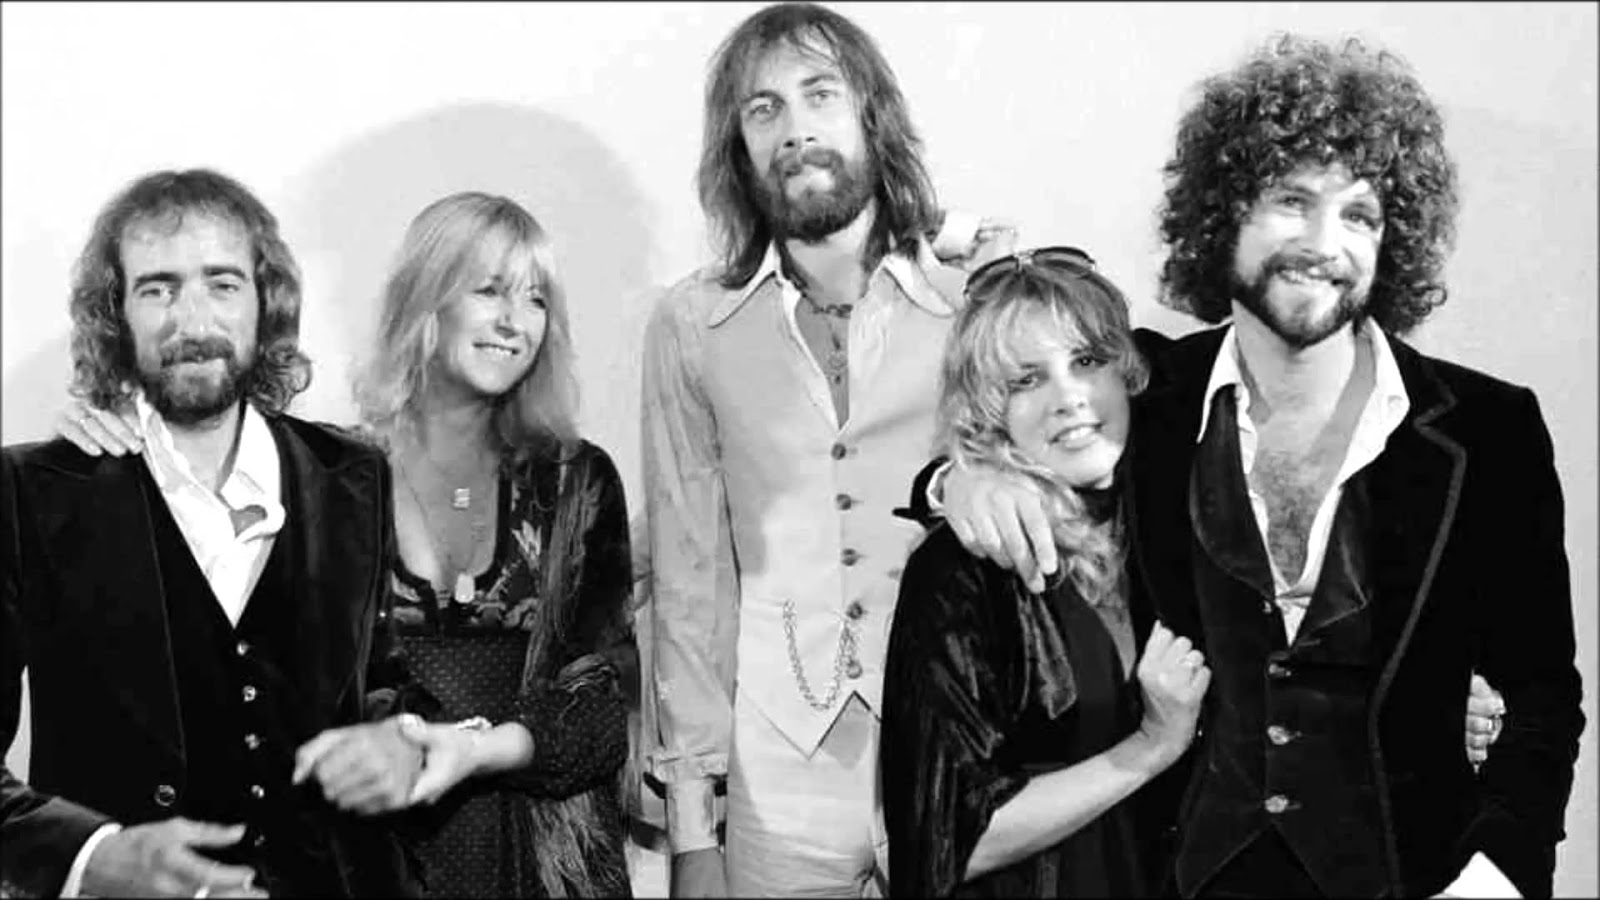 Fleetwood Mac Return To New Zealand - Their Most Overlooked, Mega